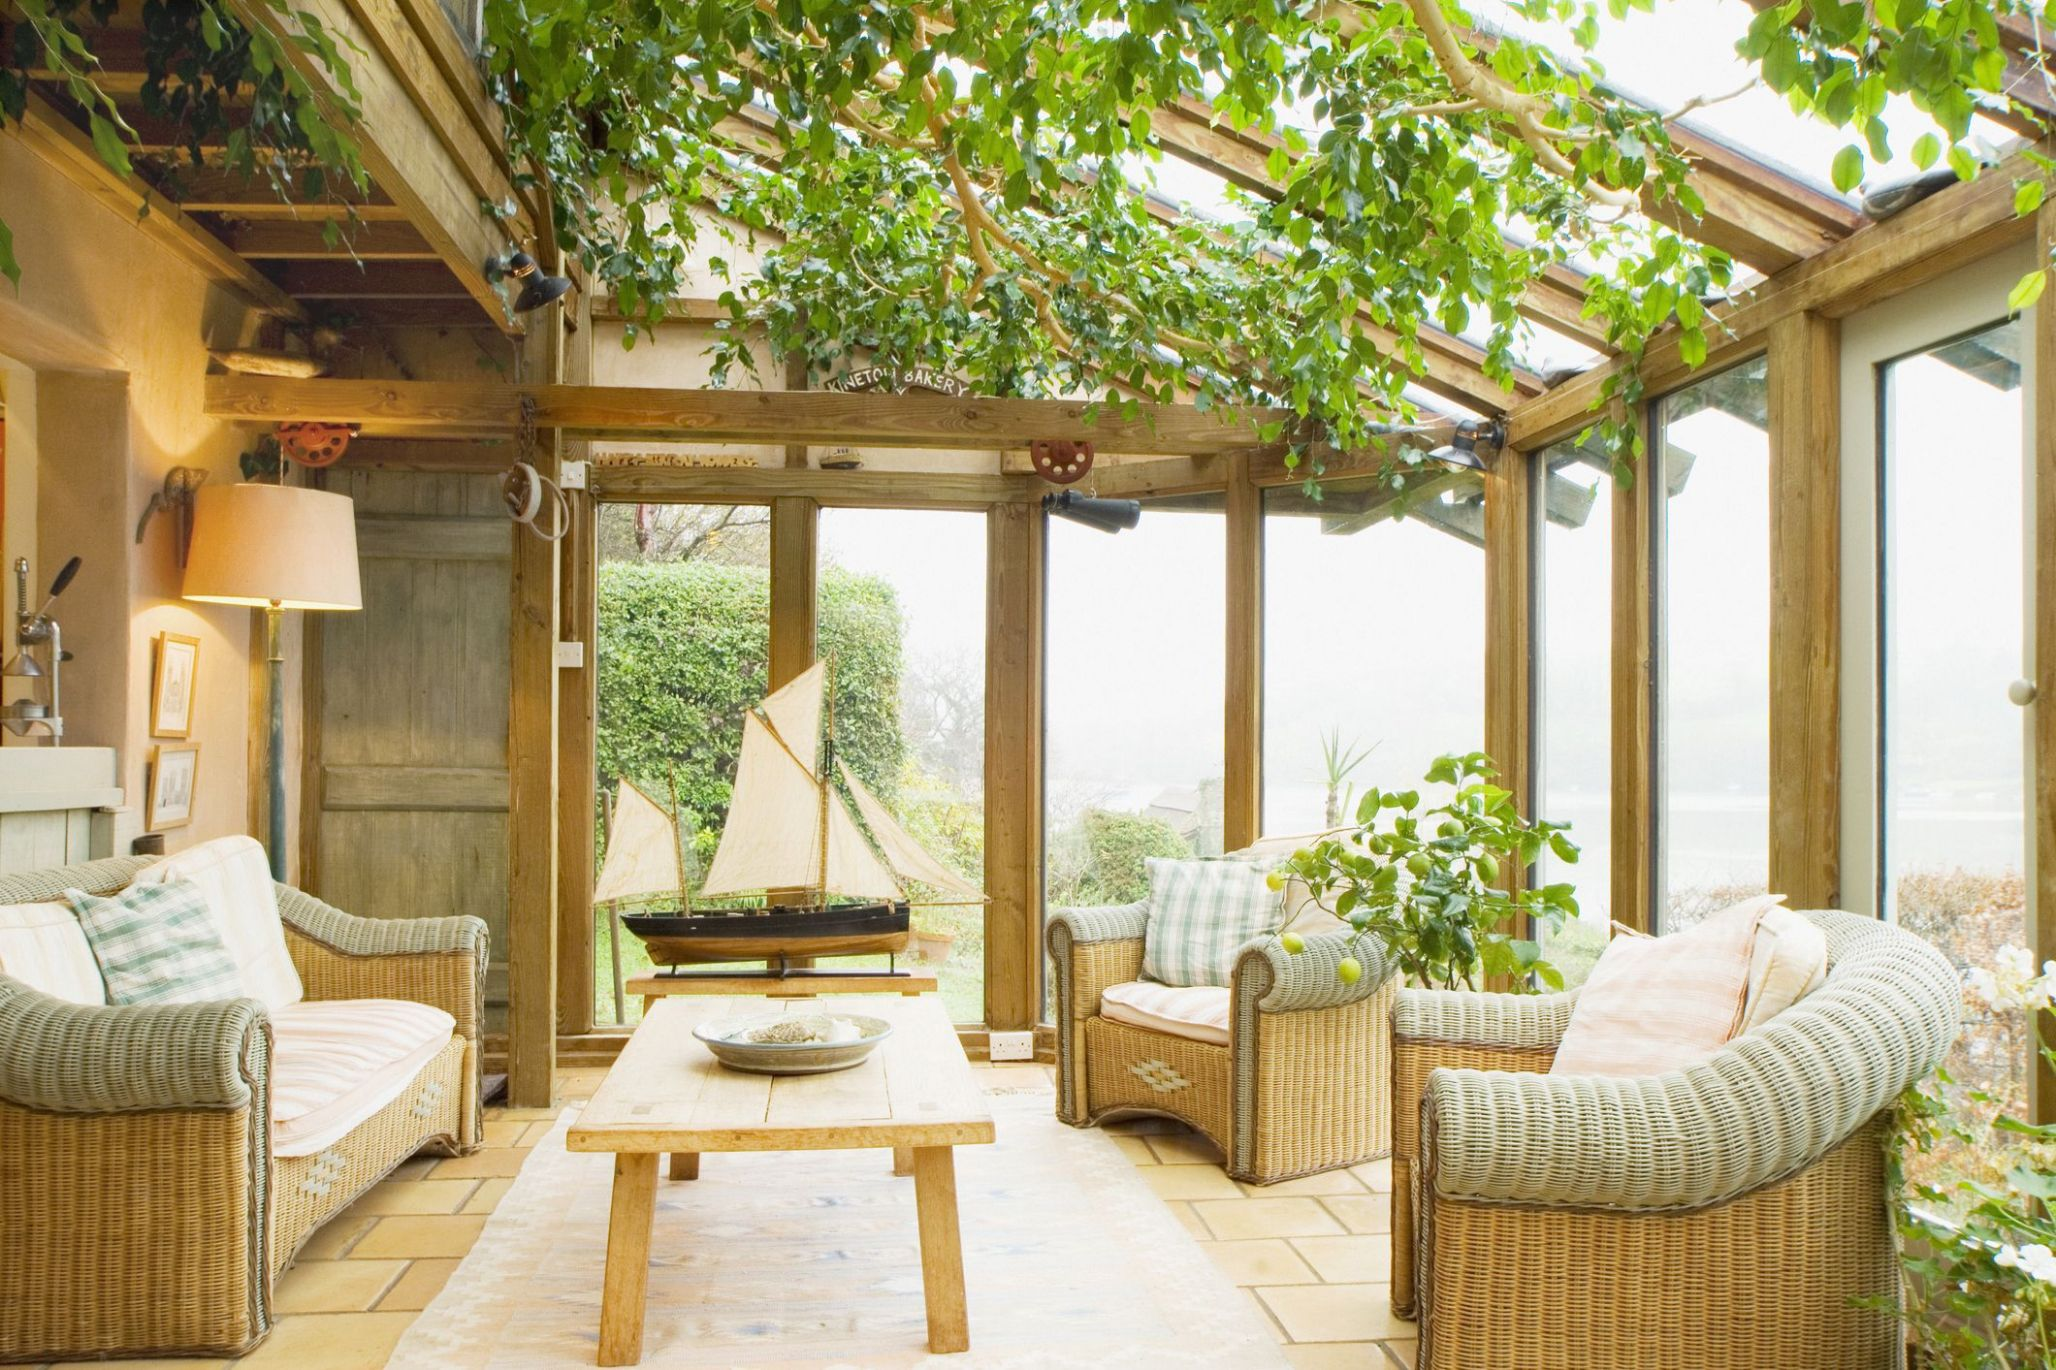 8 Best Sunroom Ideas - Gorgeous Sunroom Designs and Pictures